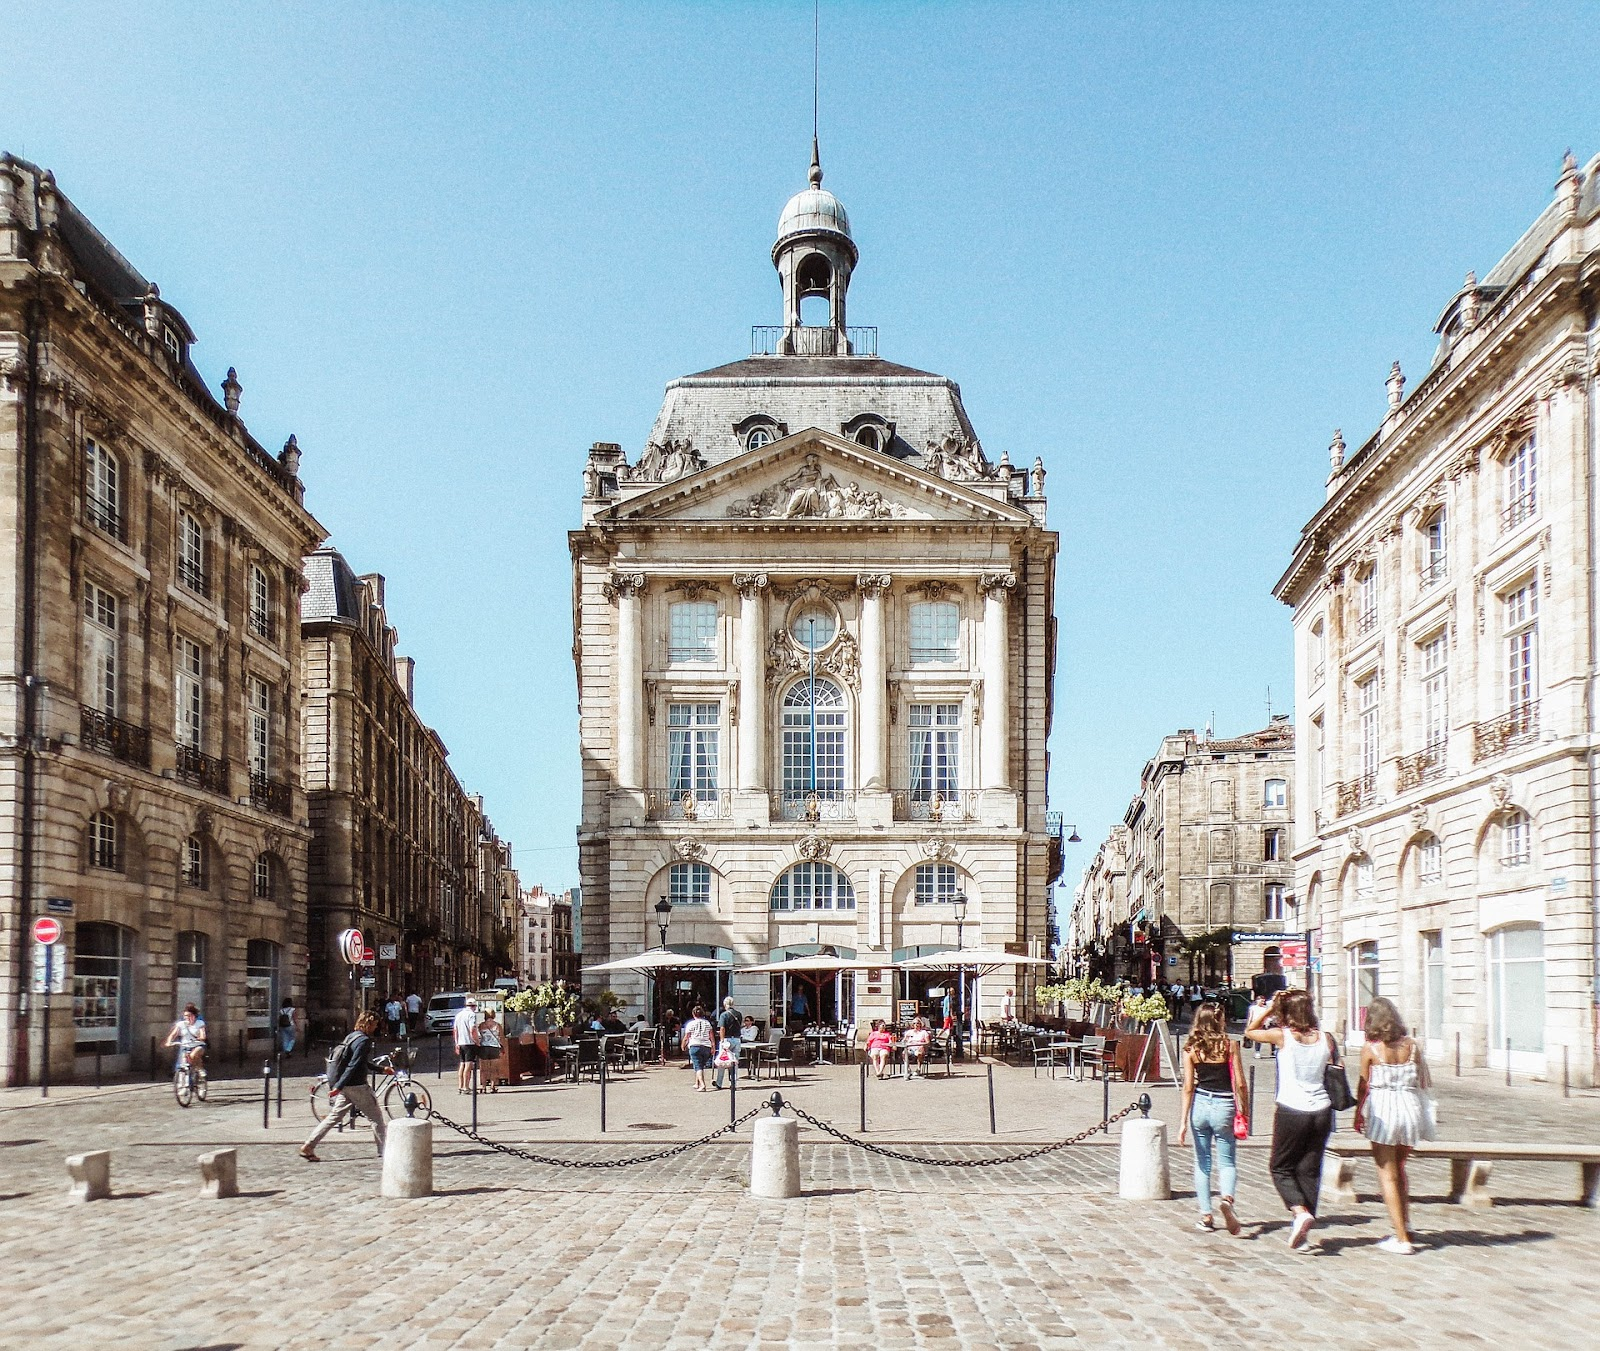 bordeaux france traditional white building with large windows, at a cobblestone square with tourists on a sunny day